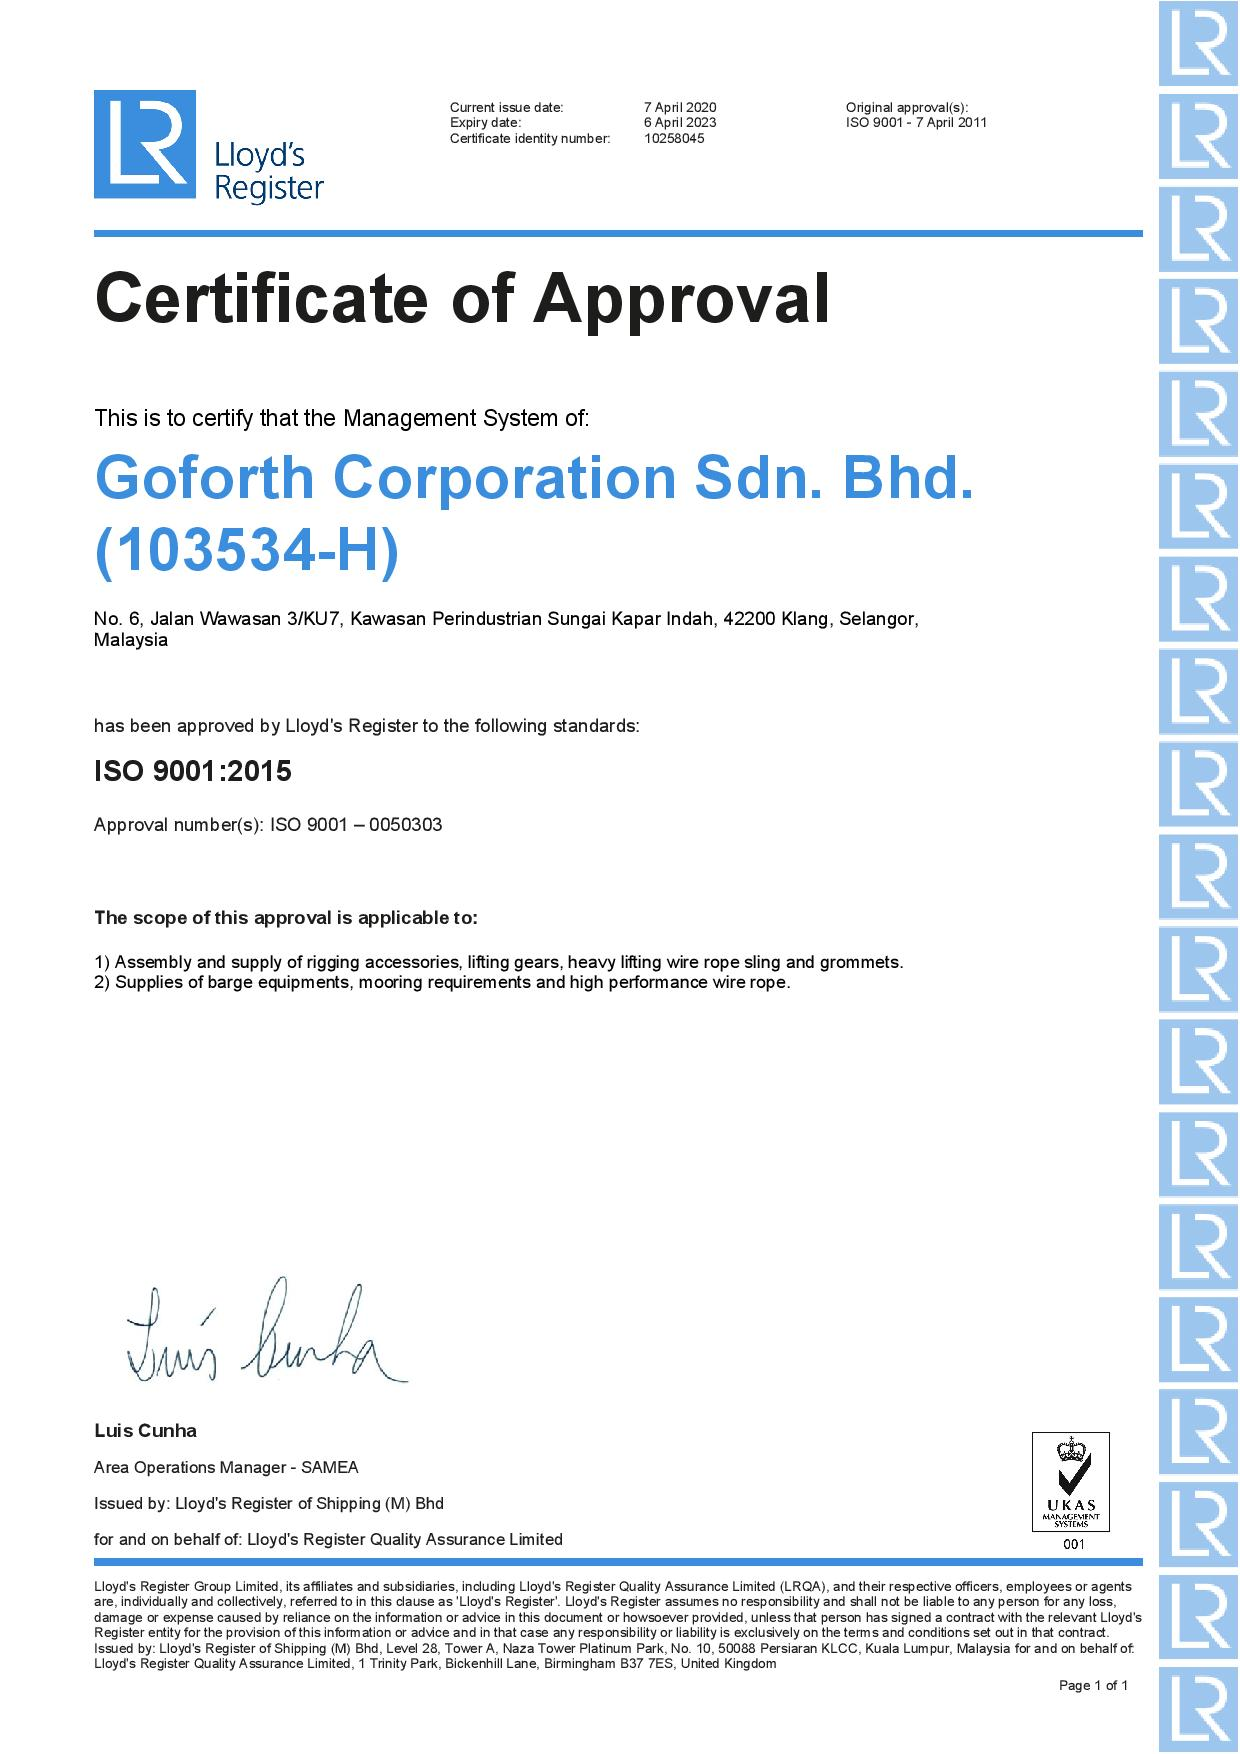 QMS-Goforth Corporation Sdn. Bhd.-UKAS-page-001